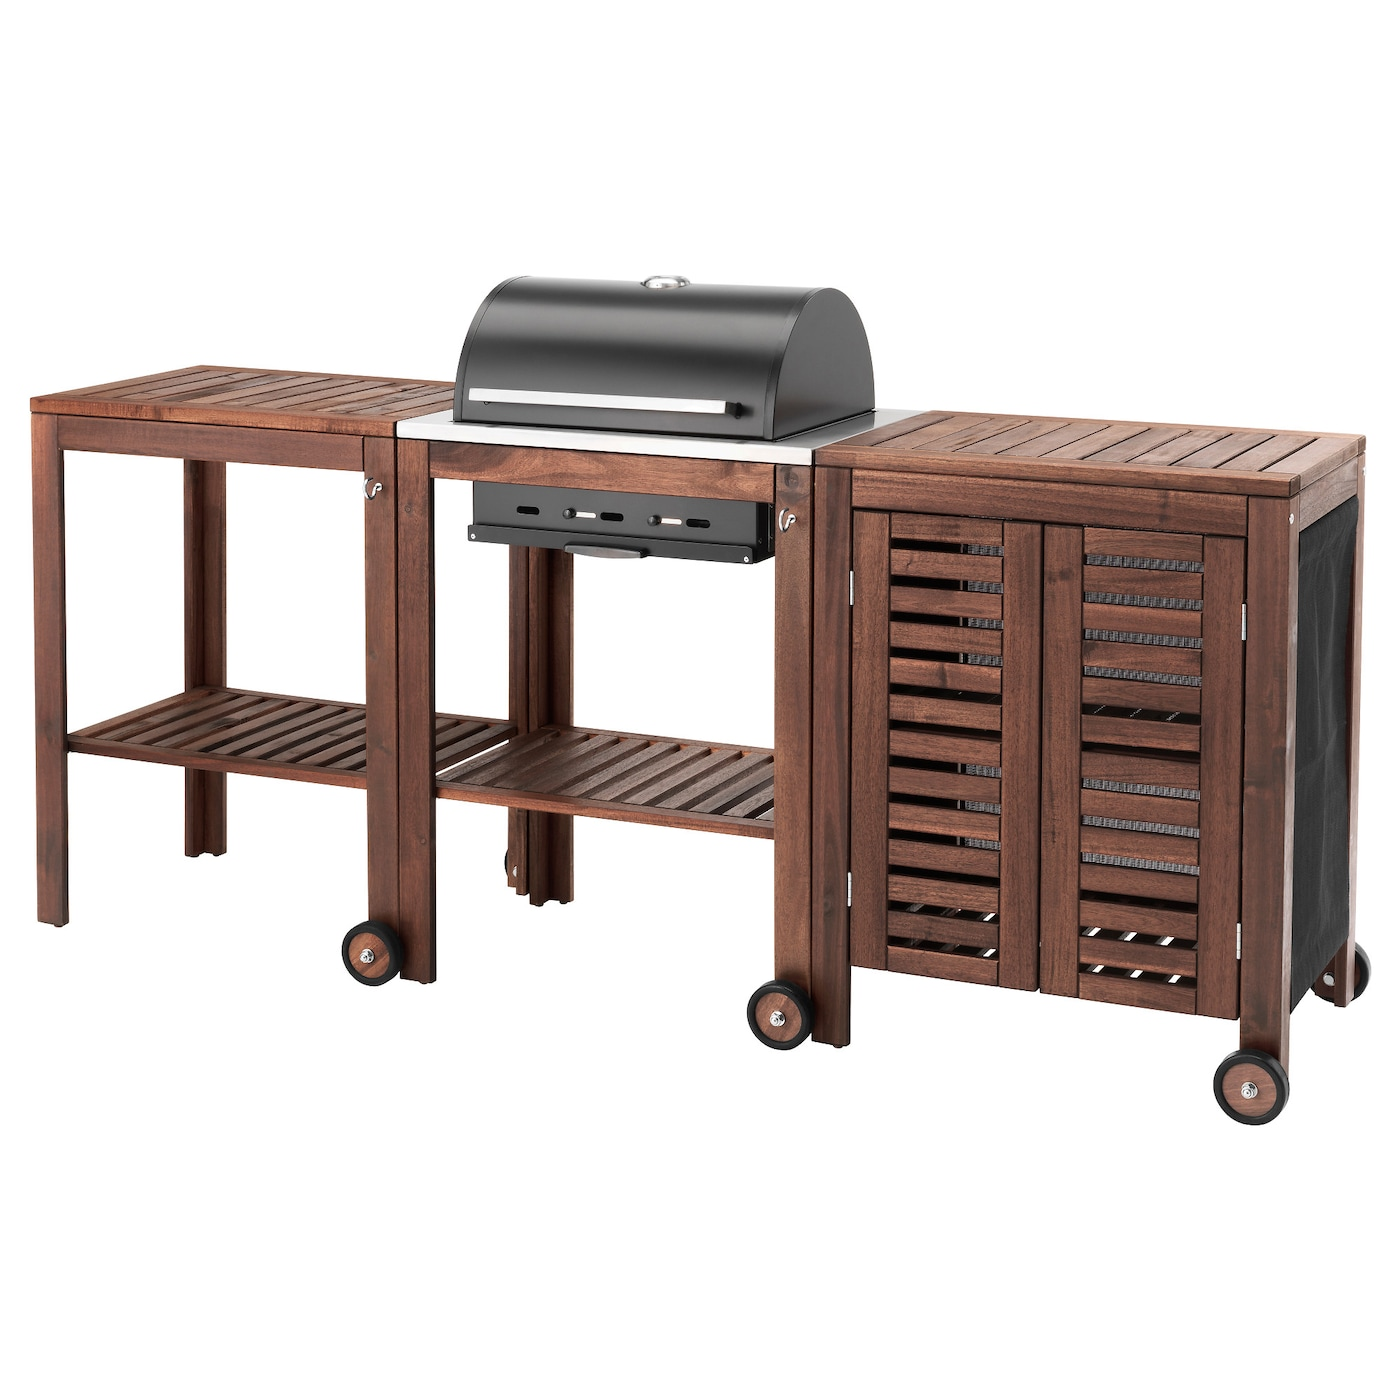 pplar klasen charcoal barbecue w trolley cabinet brown stained ikea. Black Bedroom Furniture Sets. Home Design Ideas